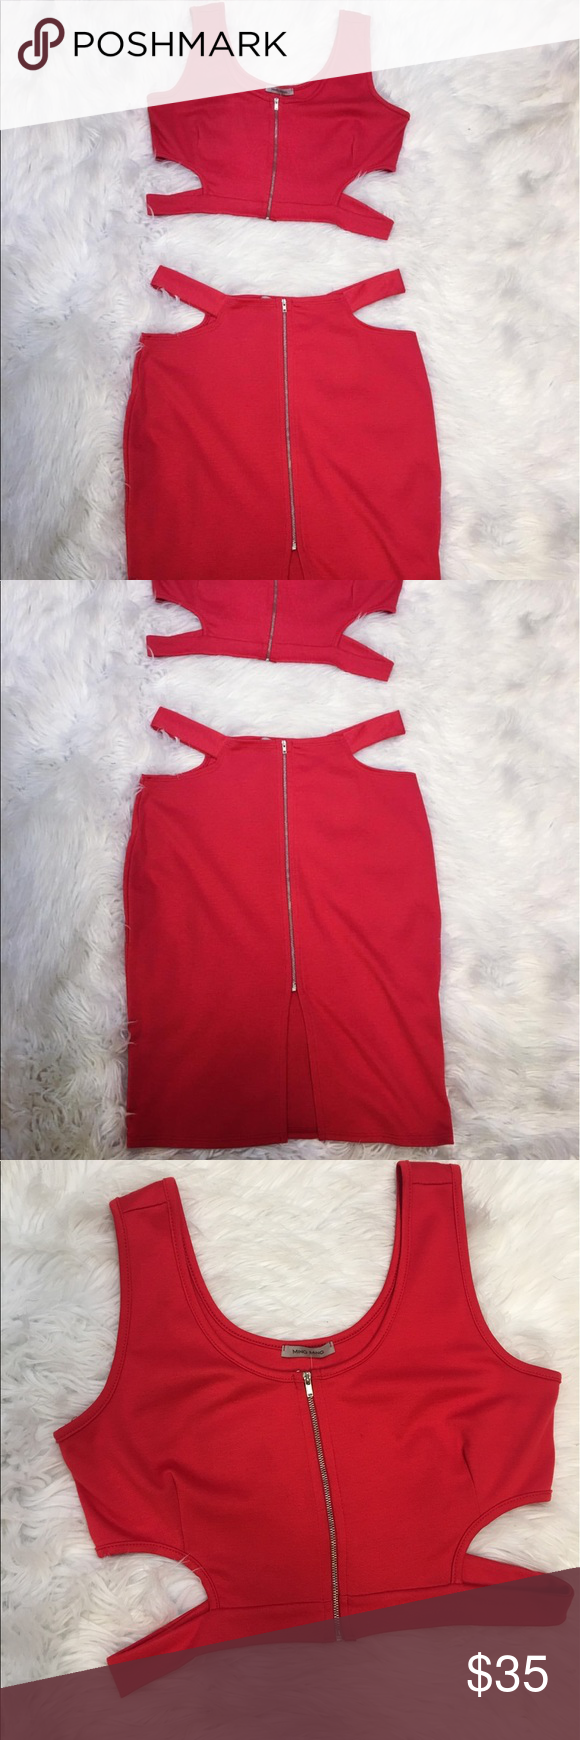 Women's Ming Two Piece Set Women's Red Ming Two Piece Set  (Size 1X)  Brand; Ming Ming Material; 75% Polyester 20% Rayon 5% Spandex  Care; Hand Wash Cold Ming Ming Other